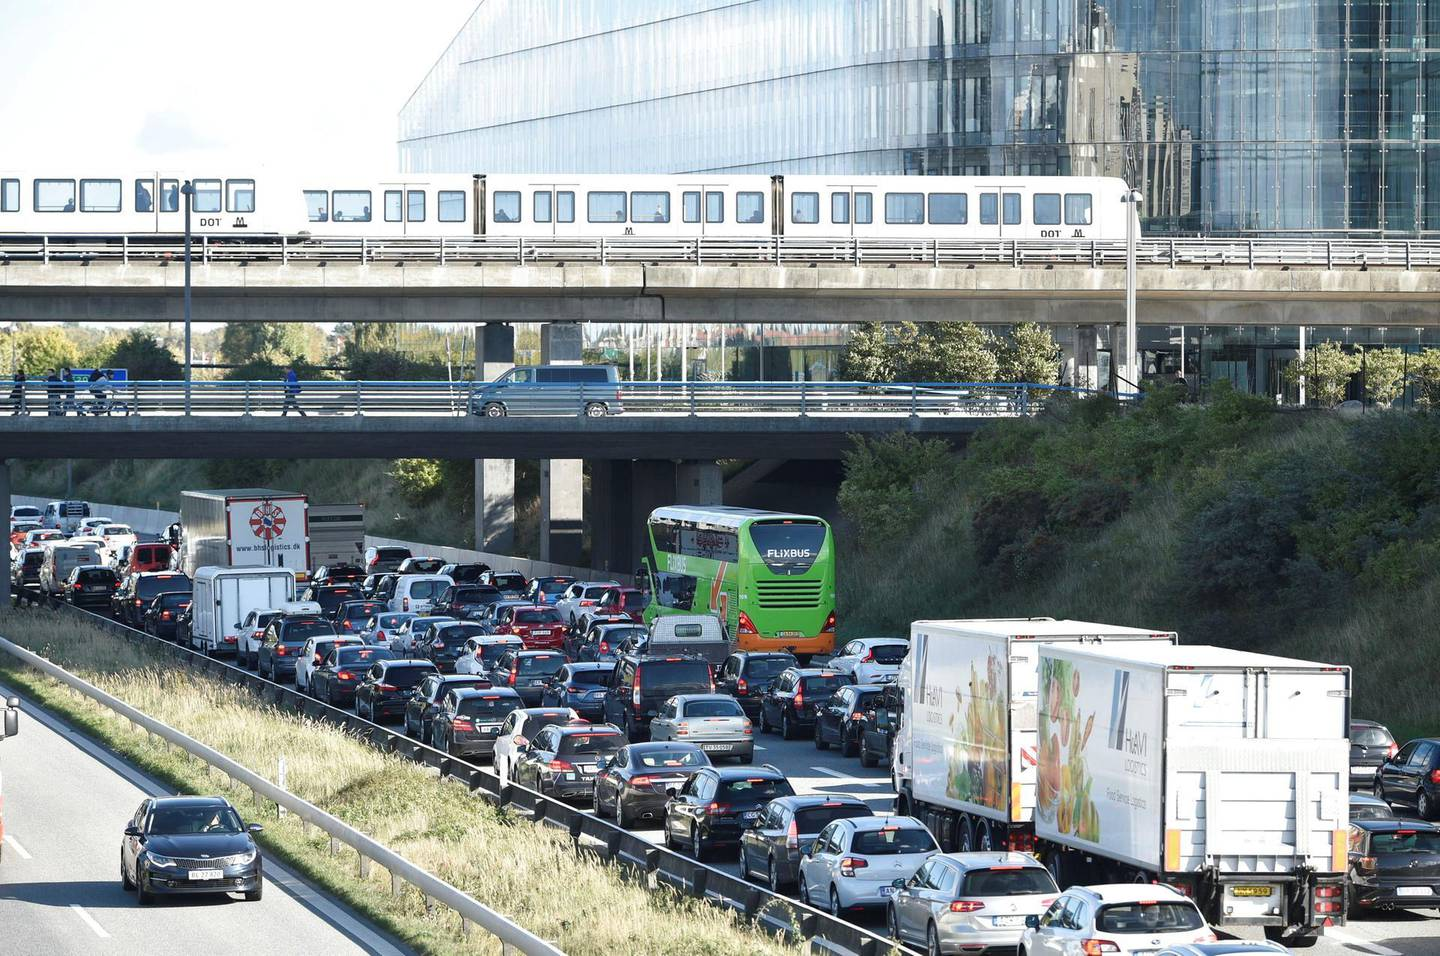 Vehicles sit in traffic after Oresund Bridge, near Copenhagen, is closed due to a police operation in Denmark September 28, 2018. Danish police have shut two major bridges to traffic and halted ferry services from Denmark to Sweden and Germany in a major operation, the Copenhagen police said on Twitter on Friday. Ritzau Scanpix/Nils Meilvang/via REUTERS     ATTENTION EDITORS - THIS IMAGE WAS PROVIDED BY A THIRD PARTY. DENMARK OUT. NO COMMERCIAL OR EDITORIAL SALES IN DENMARK.